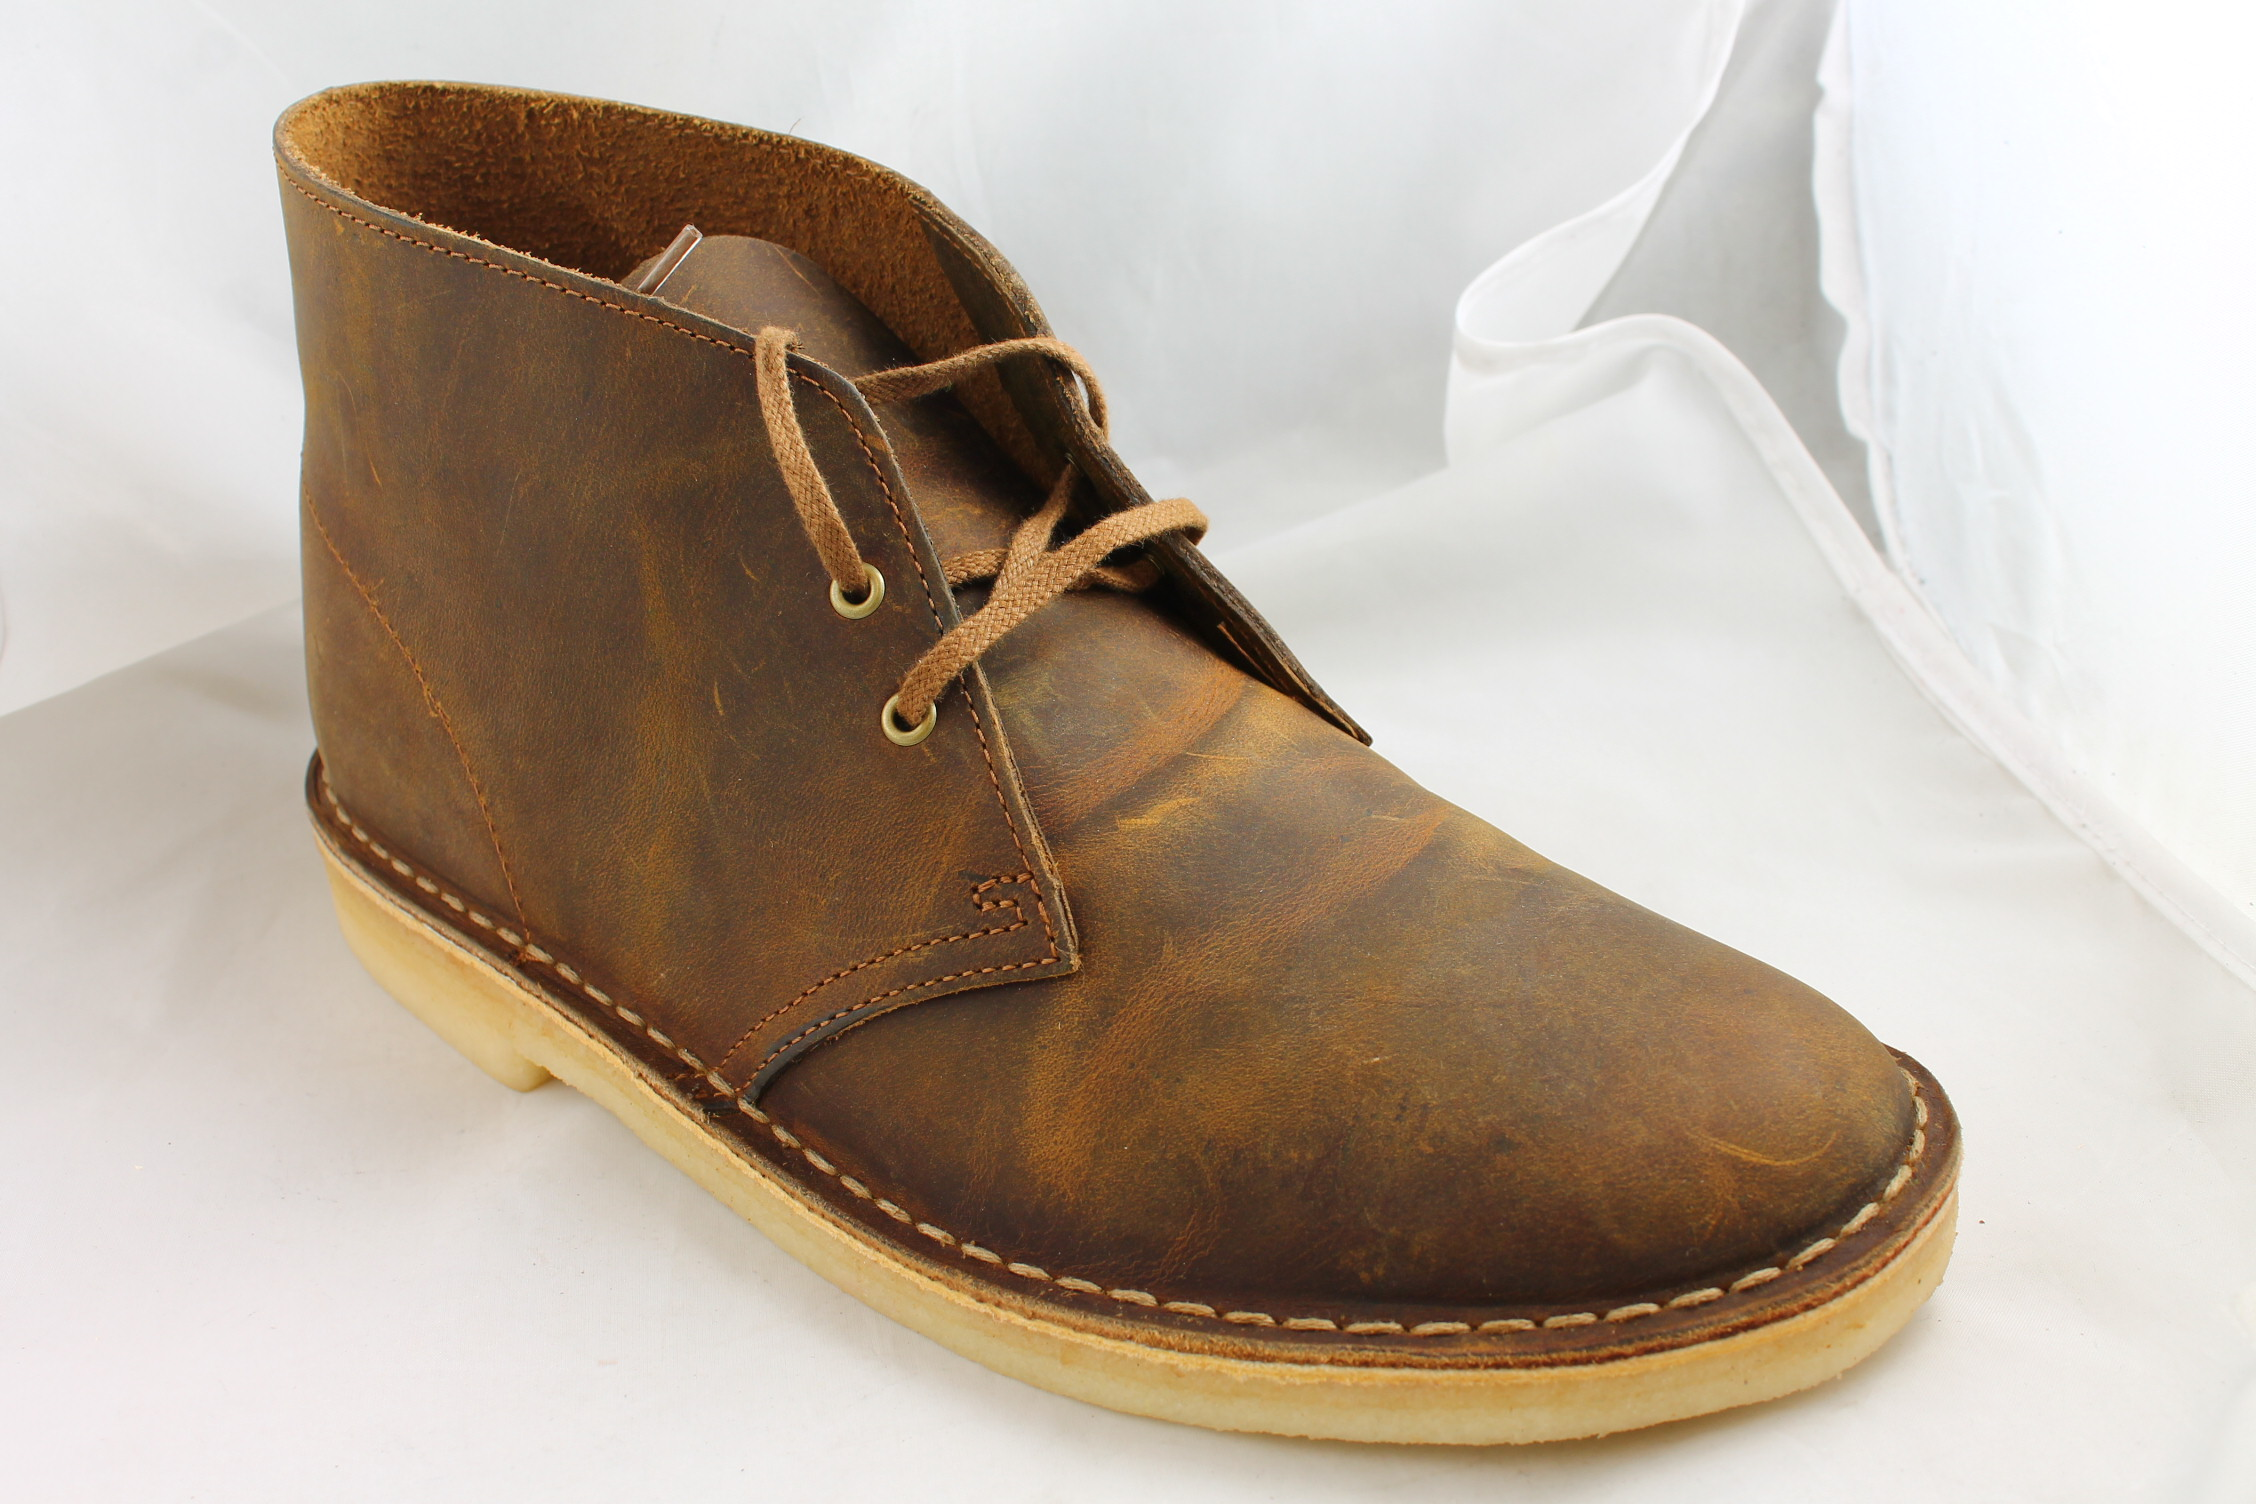 Clarks Leather Boots jY9lqSe